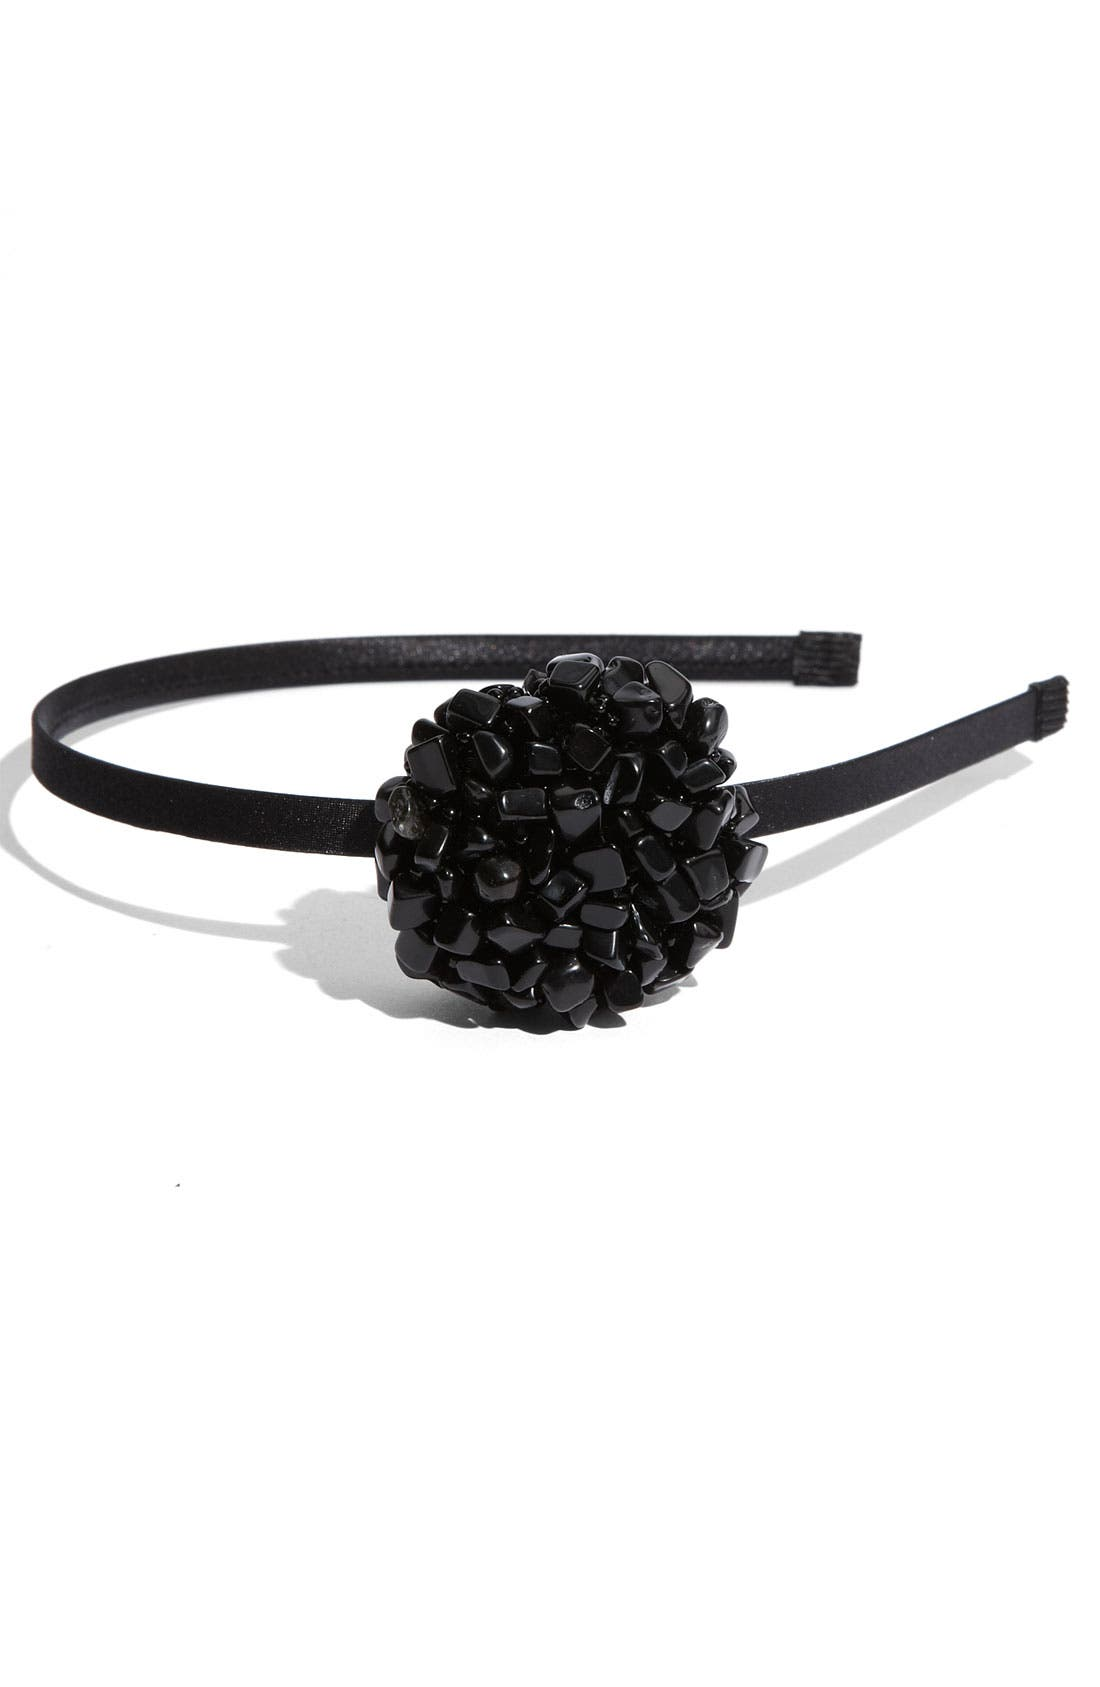 Alternate Image 1 Selected - Tasha 'Rocken' Headband